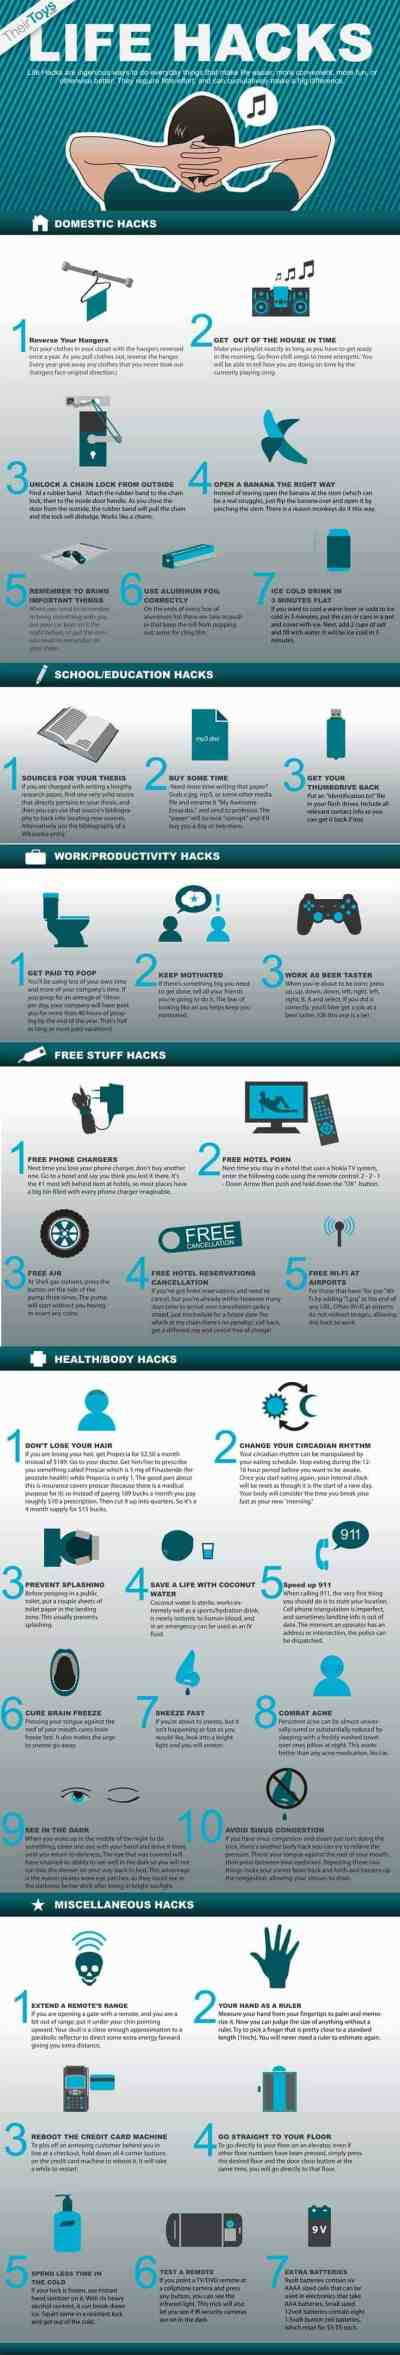 Life Hacks | Daily Infographic